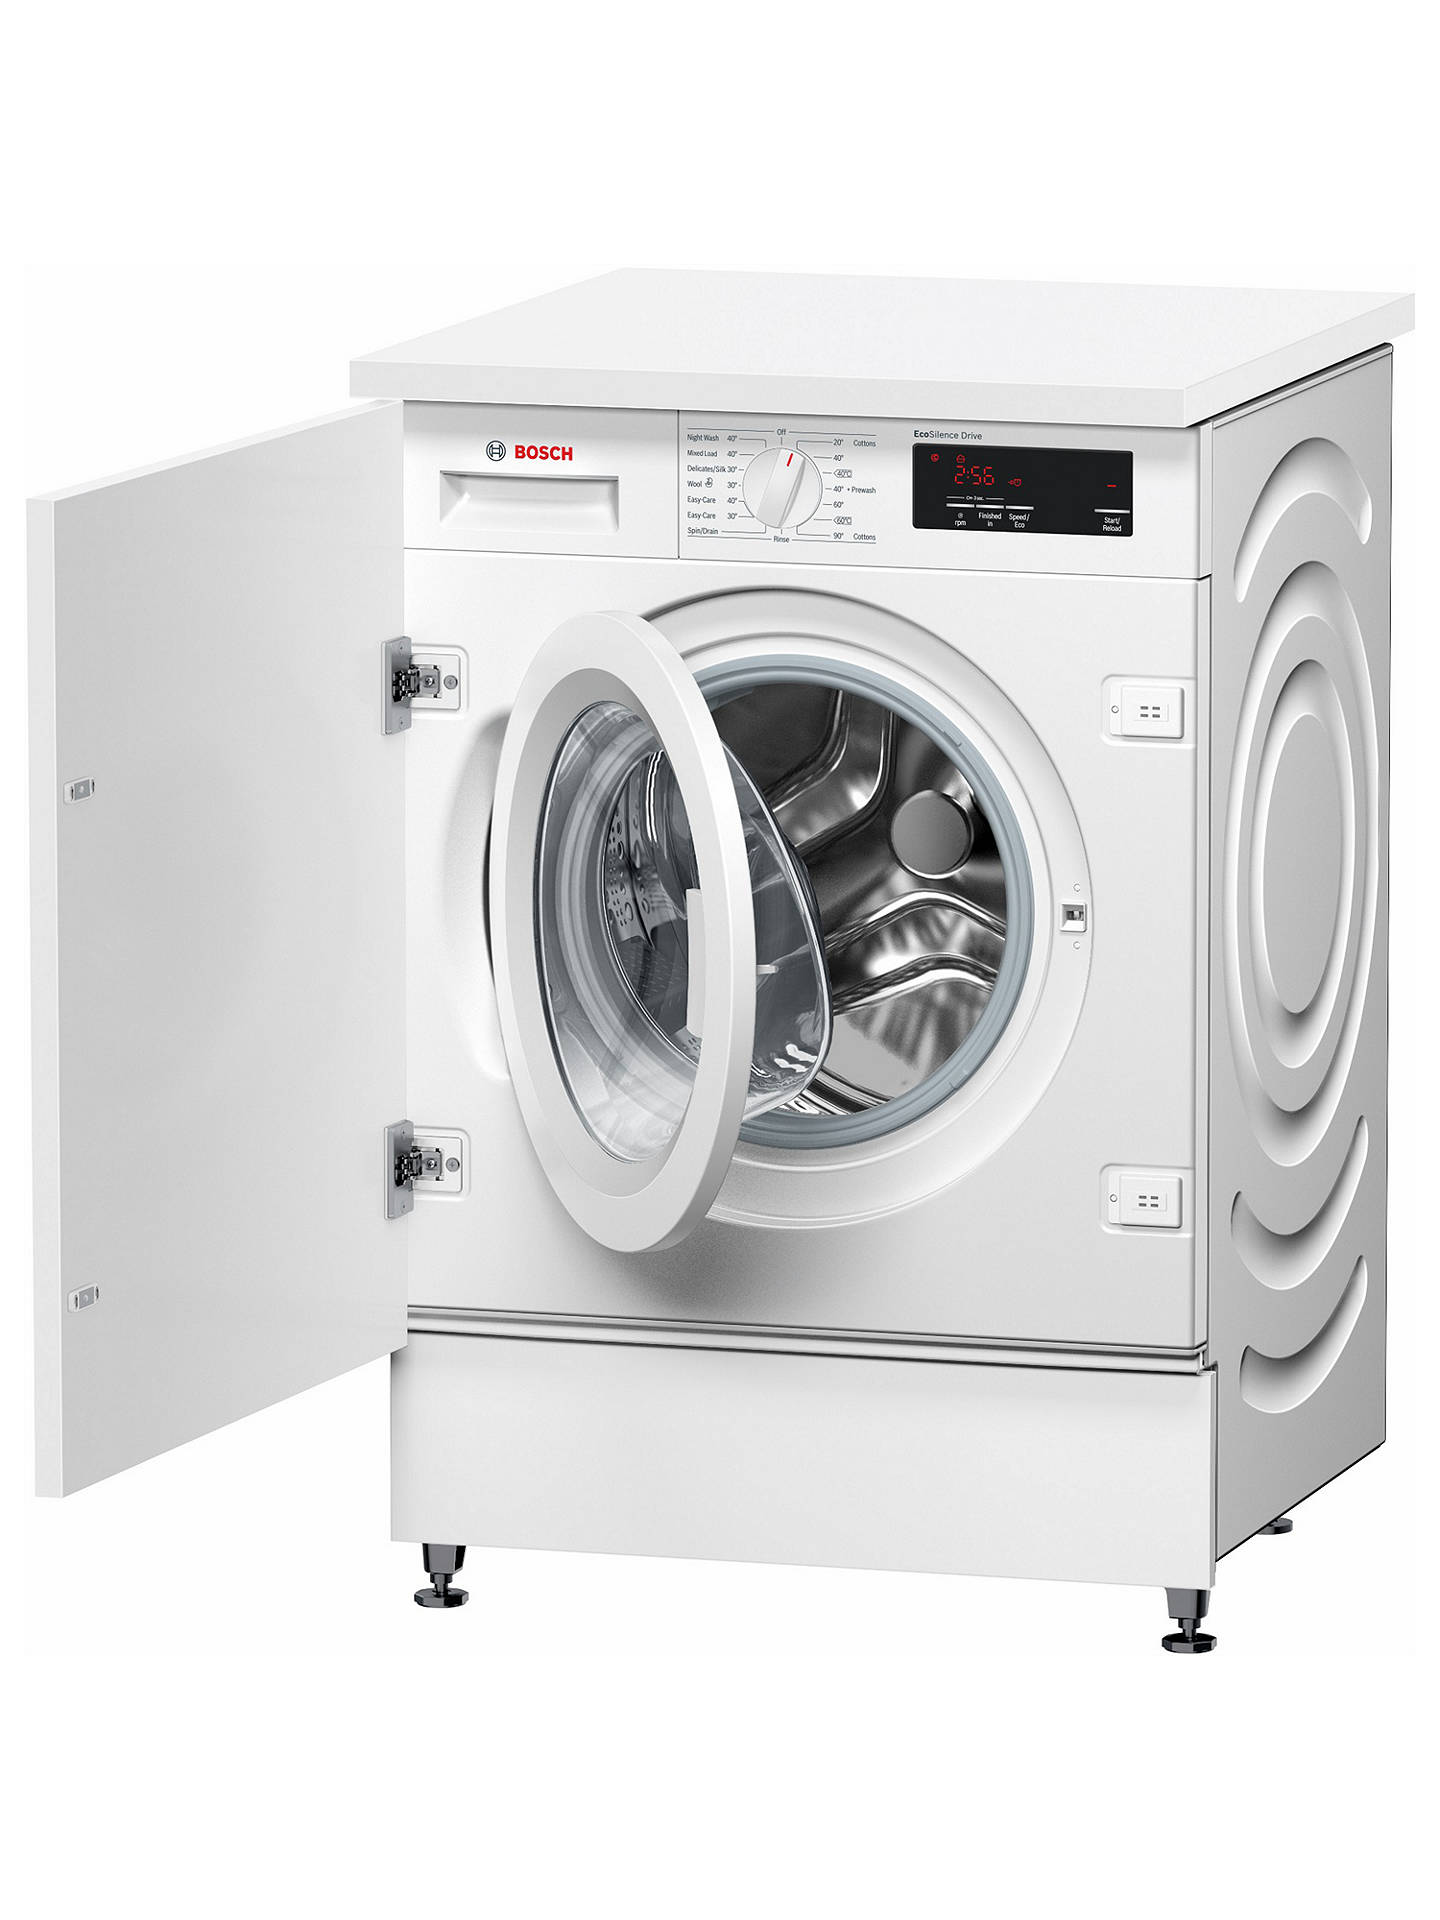 Buy Bosch WIW28300GB Integrated Washing Machine, 8kg Load, A+++ Energy Rating, 1355rpm Spin, White Online at johnlewis.com